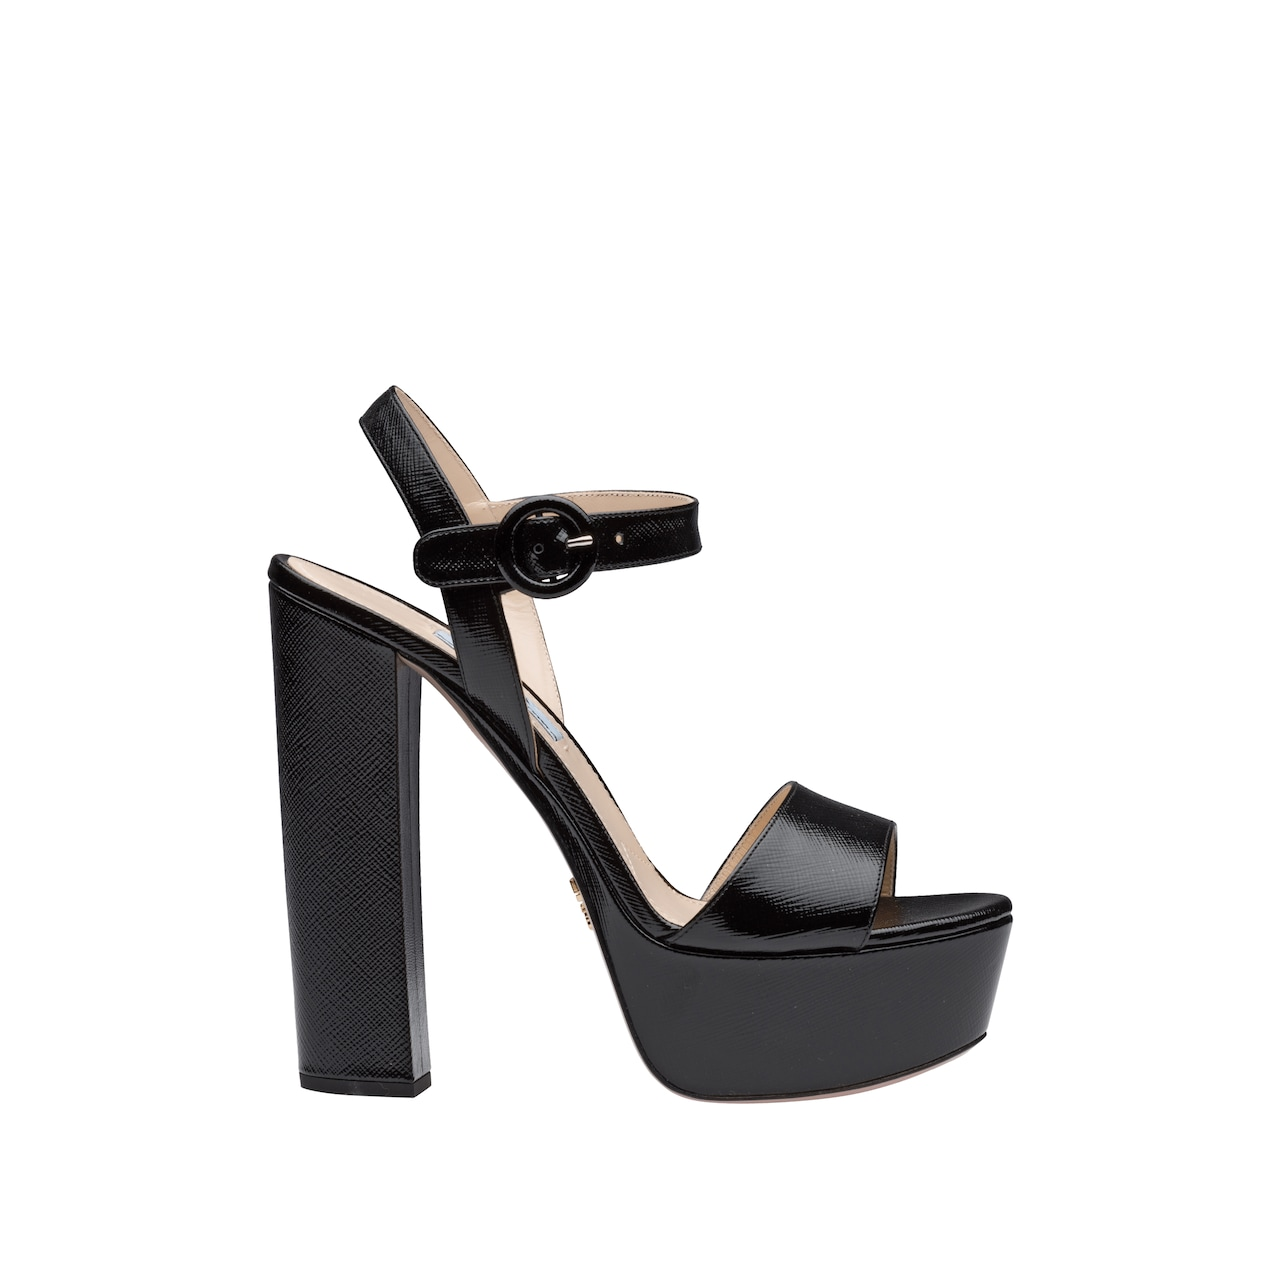 85d18ac618 Laminated Saffiano leather platform sandals | Prada - 1XP13A_053_F0002_F_140